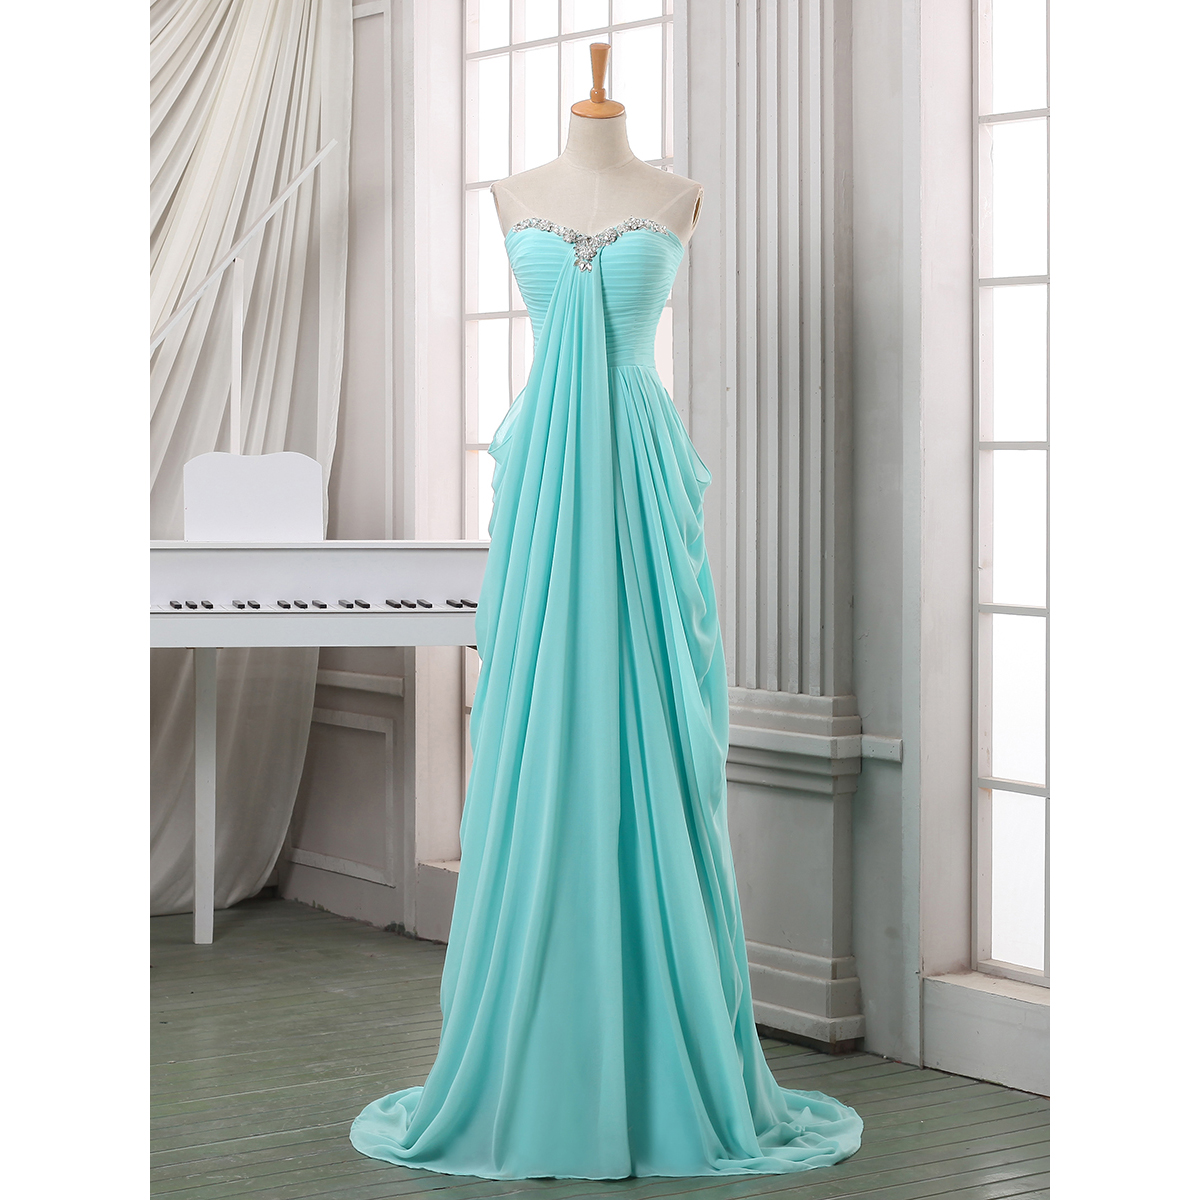 Crystal Sweetheart Ruched Long Prom Dress, A-line Chiffon Floor Length Prom Dress, Ice Blue Pleats Sweep Train Prom Dress, #020102699